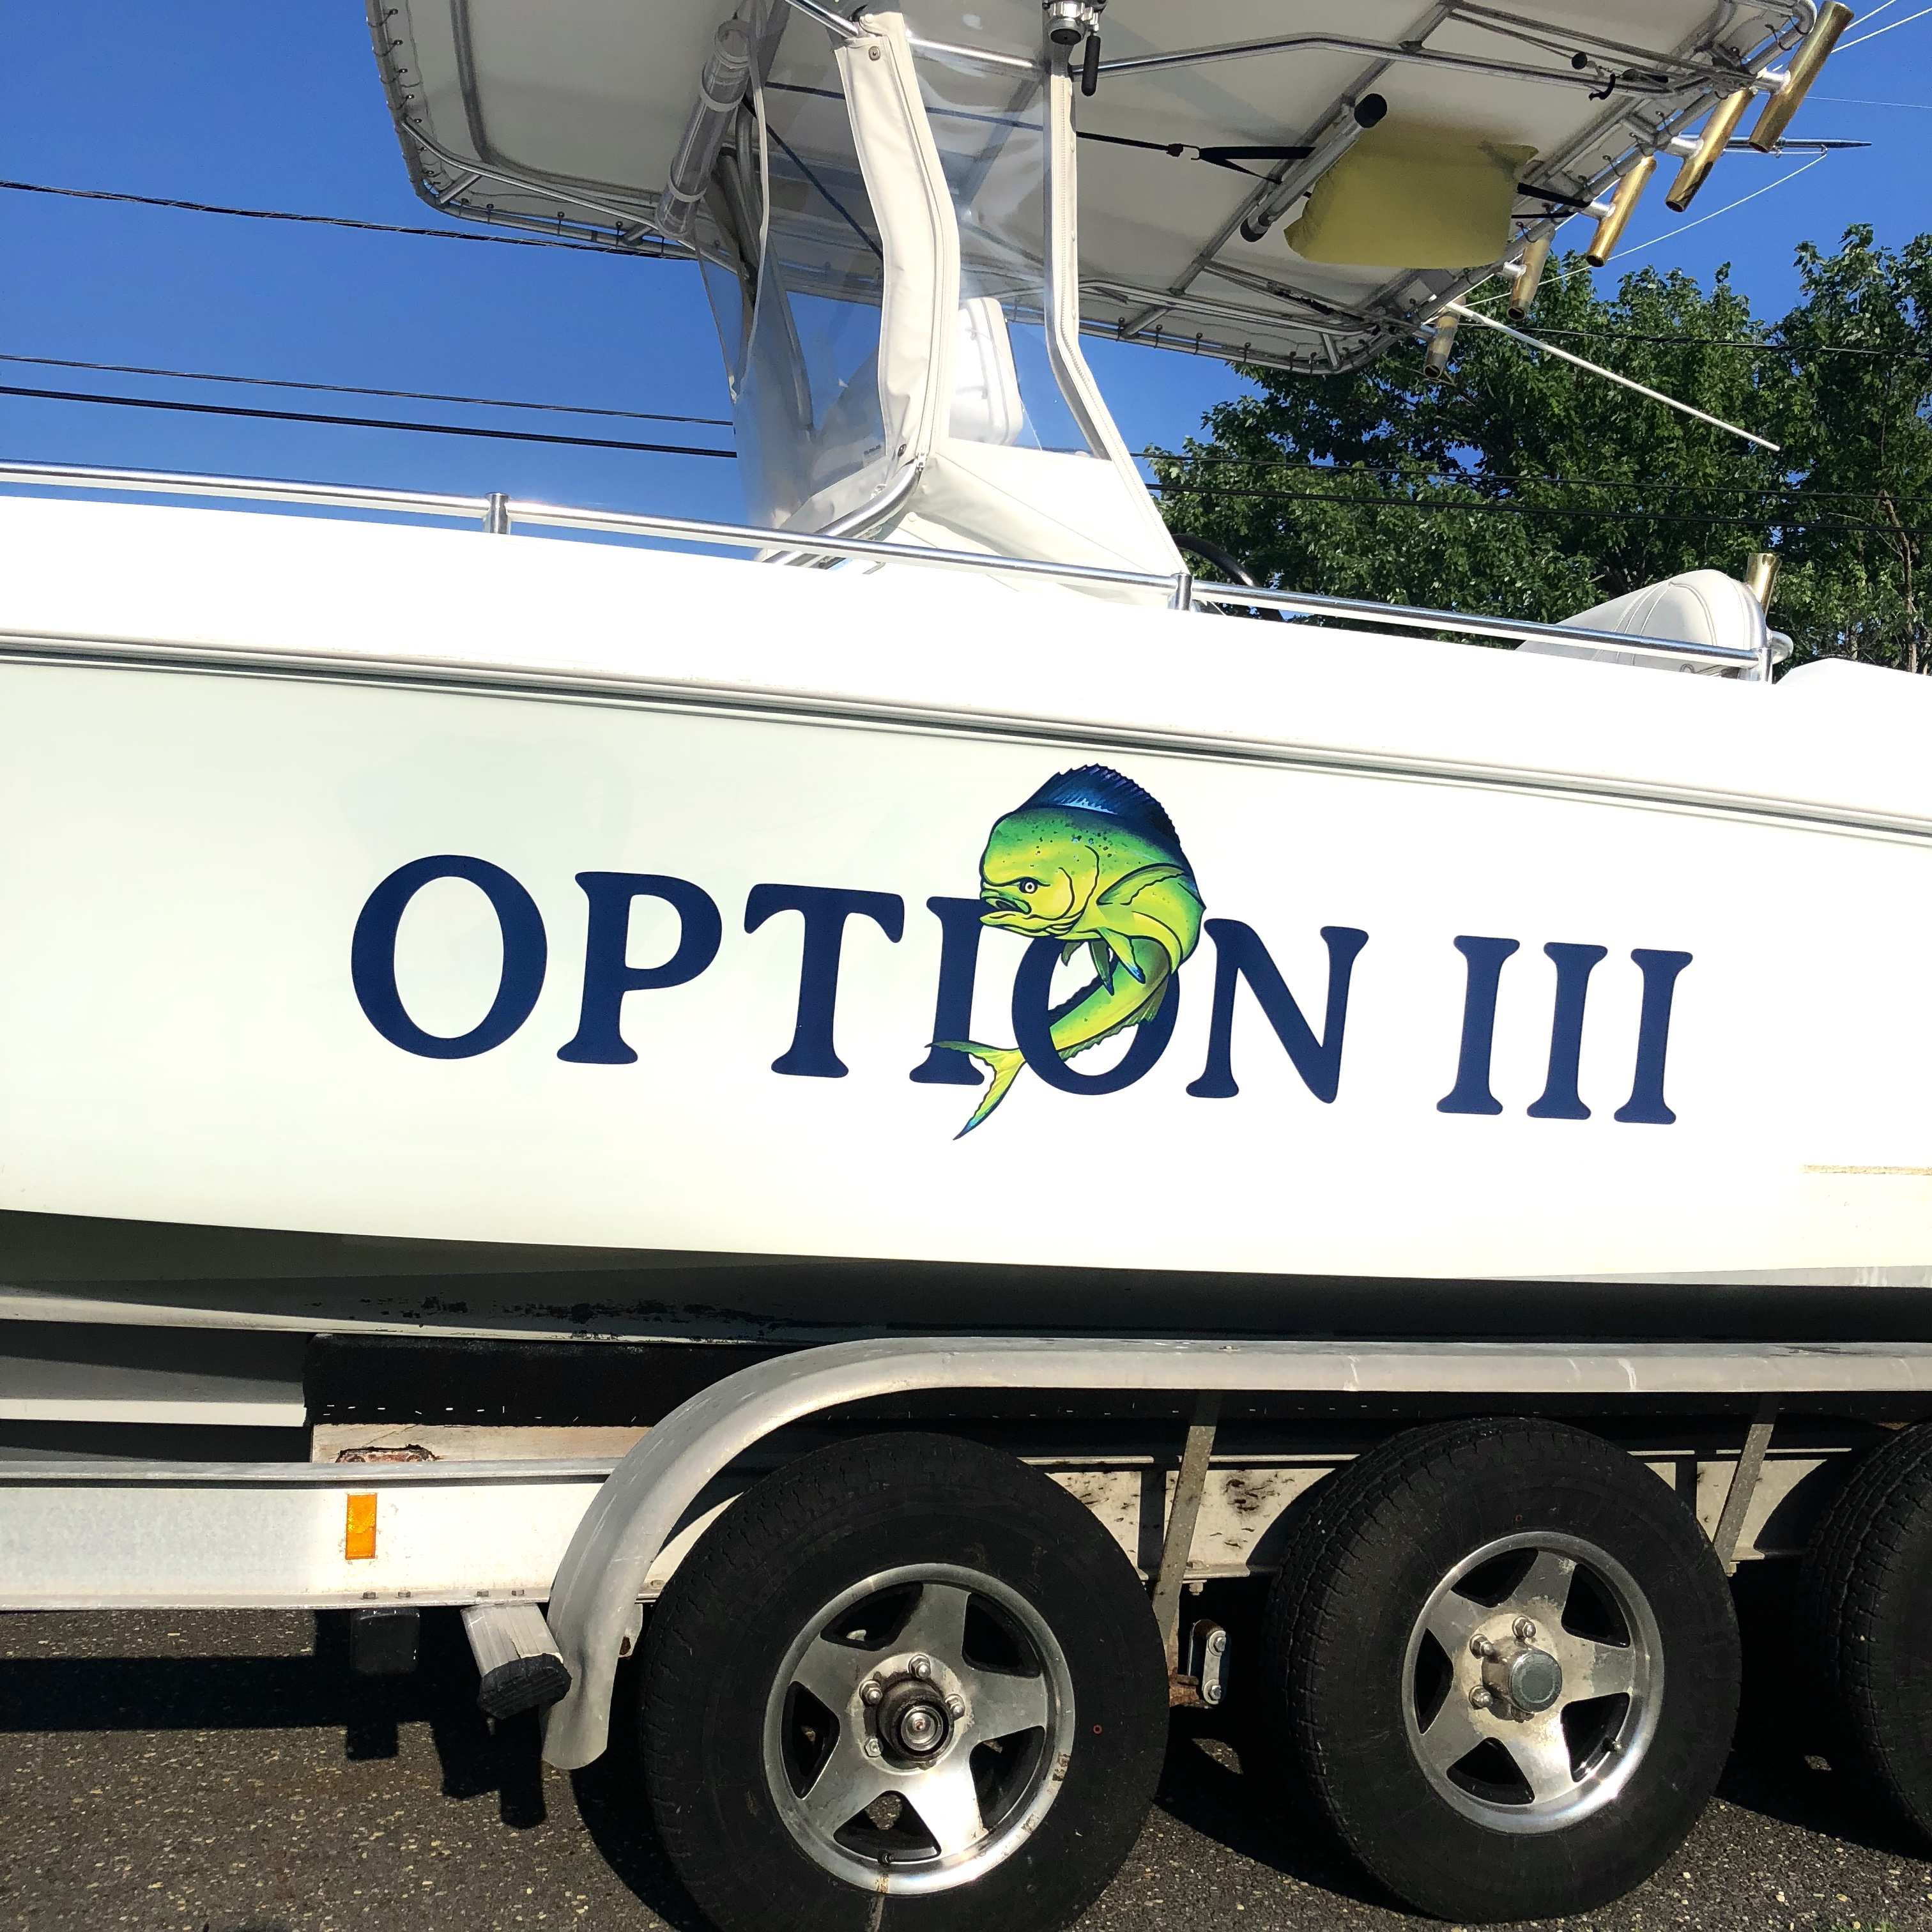 Full Color Die-Cut Boat Name Vinyl